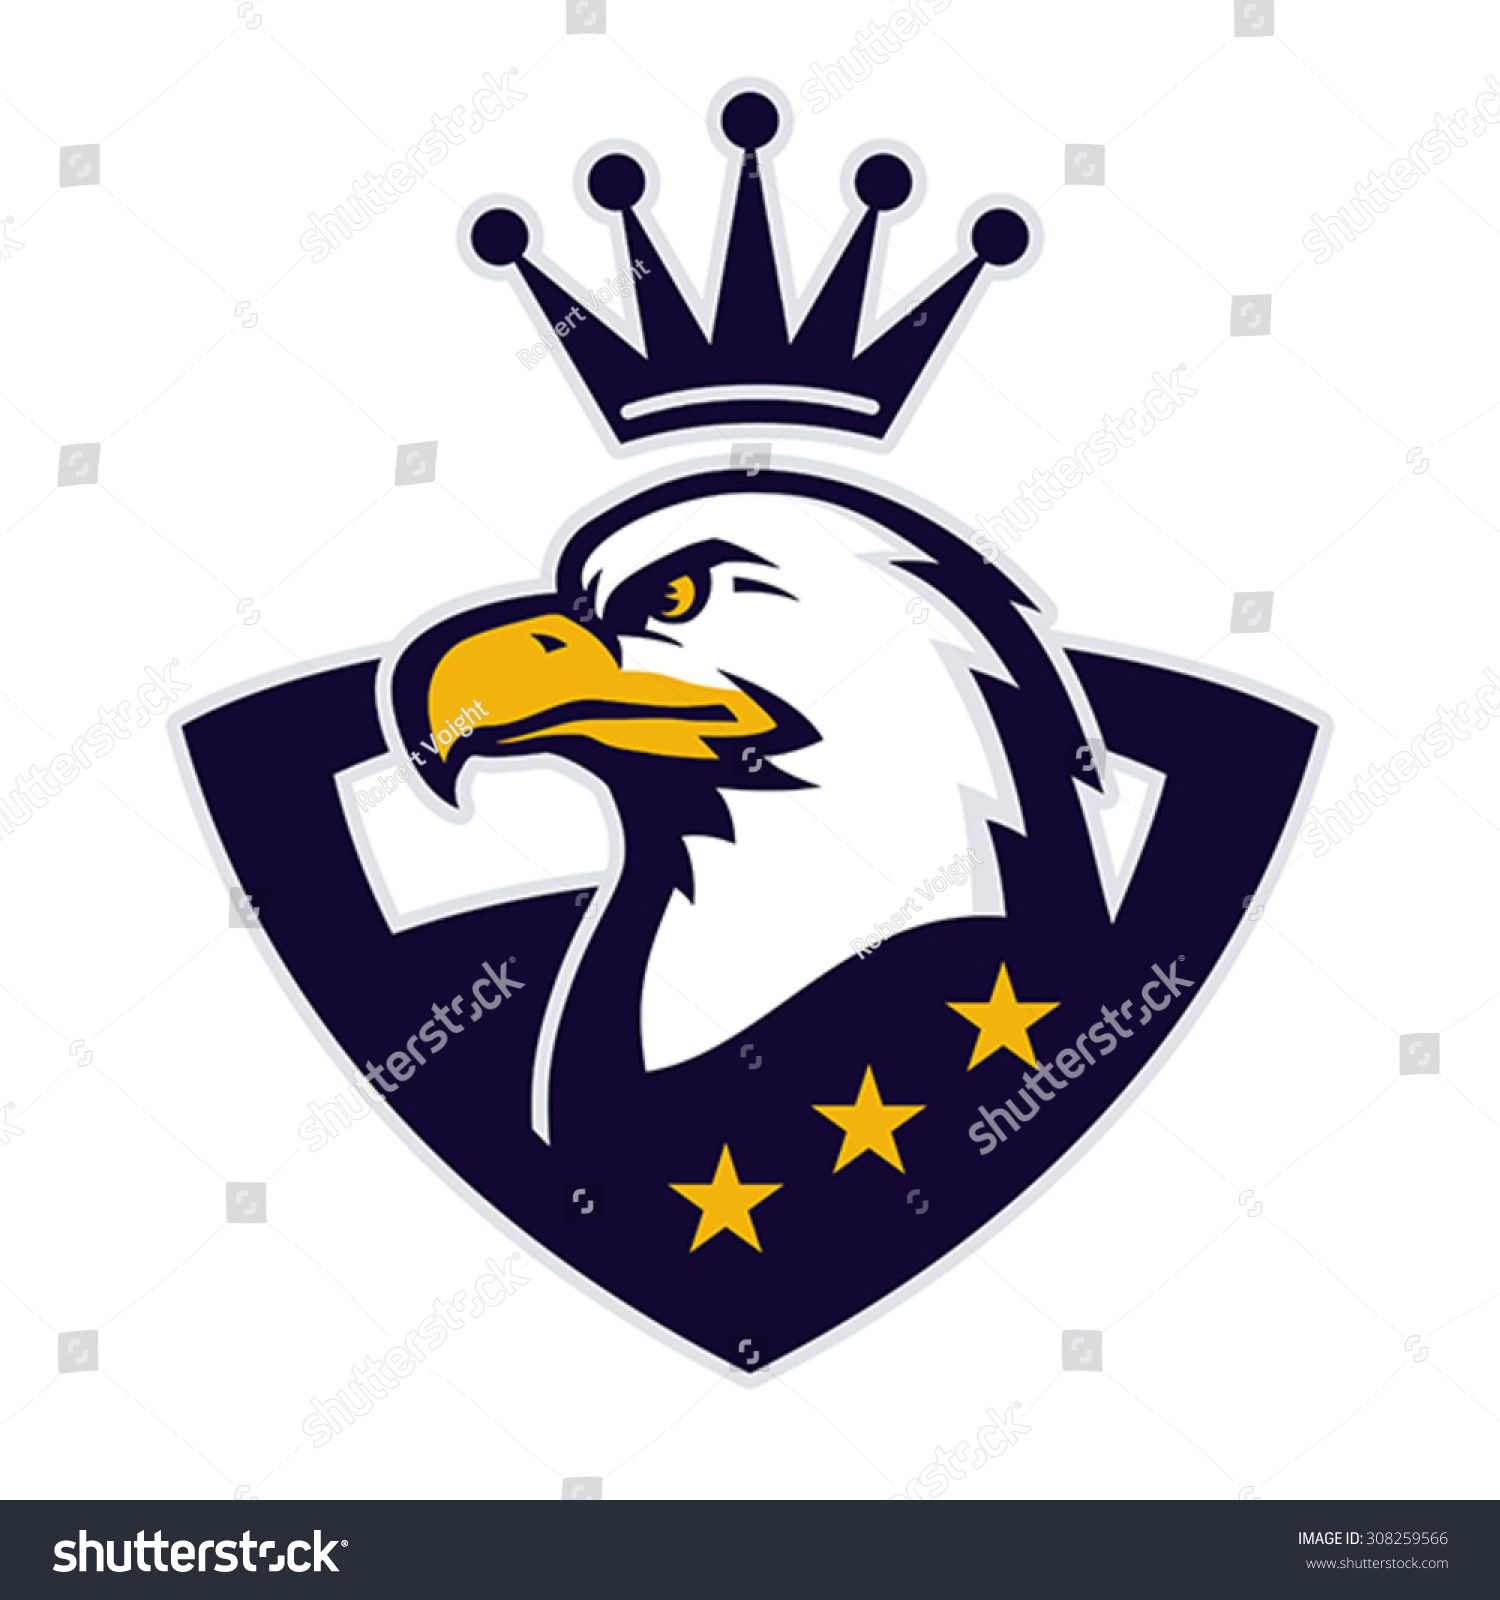 small resolution of mascot with crowned american eagle logo design logodesign vector illustration eagle crown vector illustration by robert voight